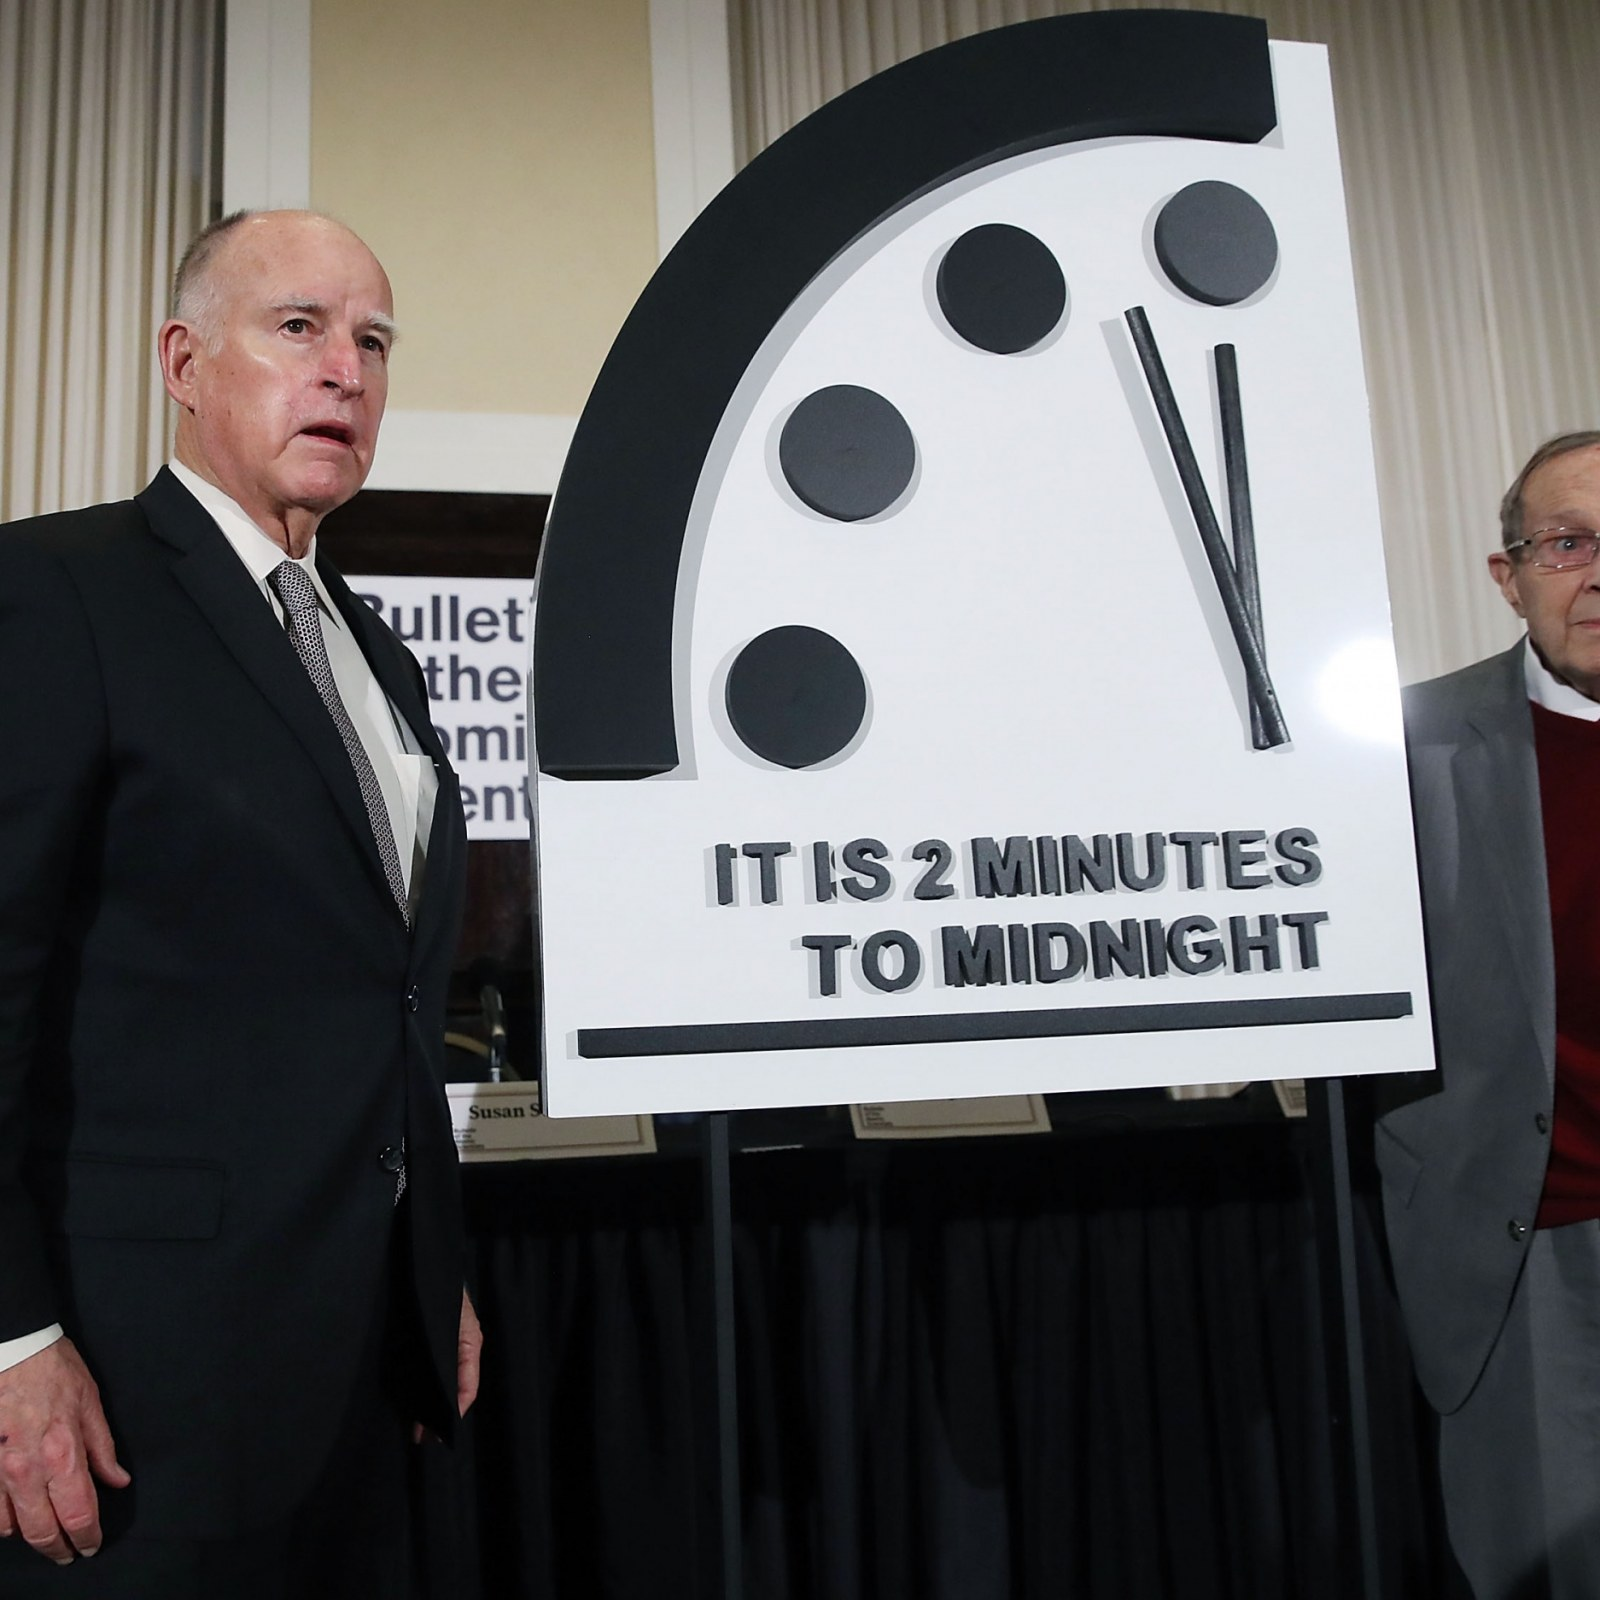 2020 Doomsday Clock Announcement Live Stream How To Watch If The Clock Will Move Forward This Year